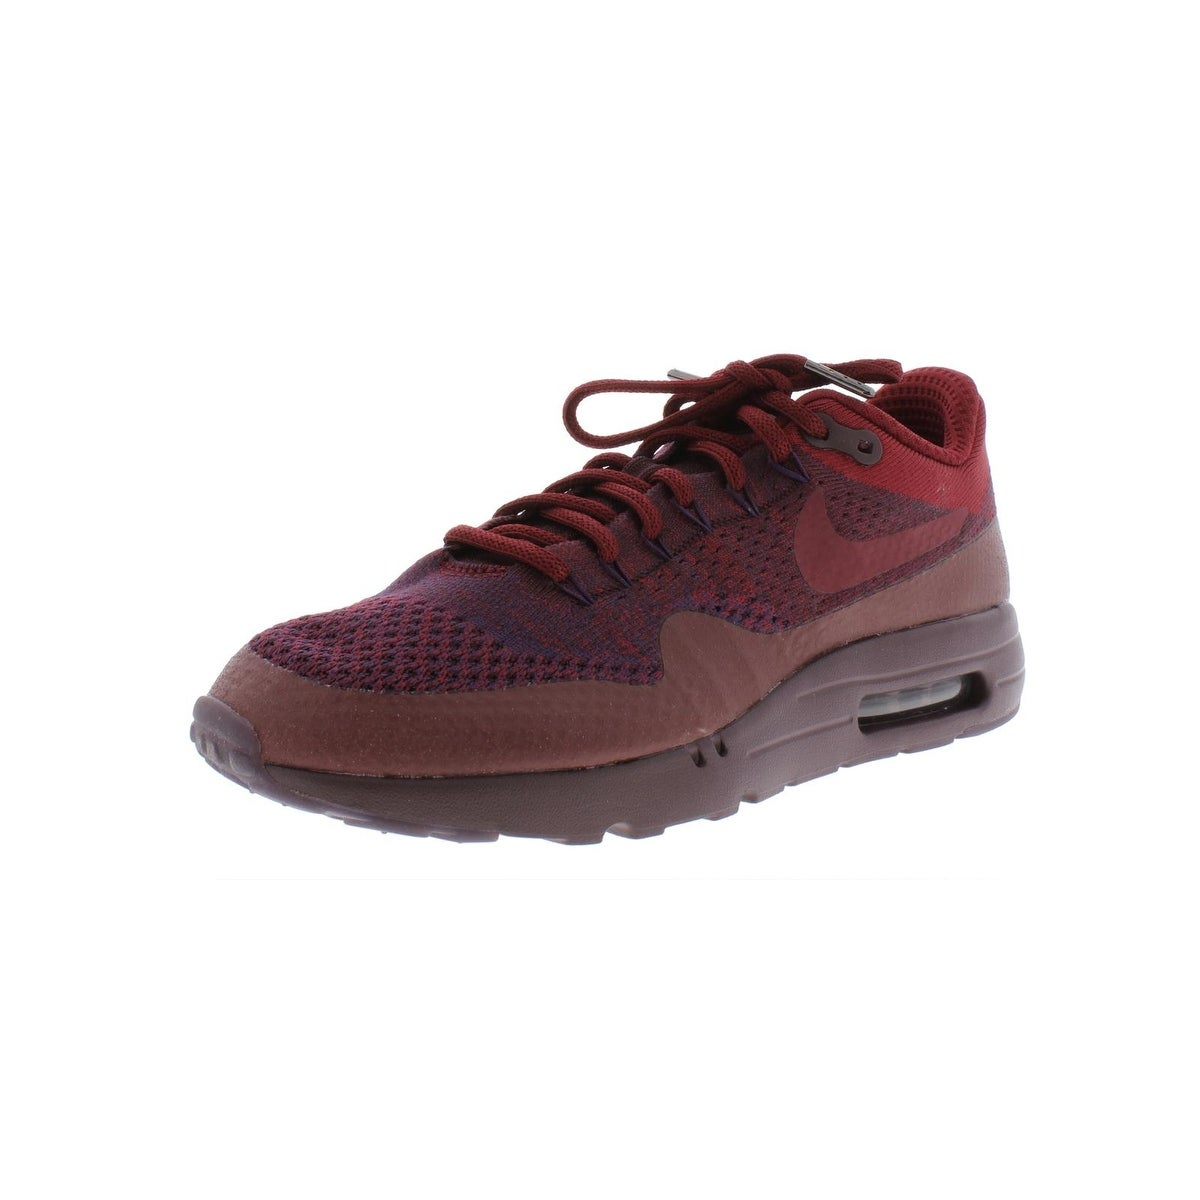 Nike Mens Air Max 1 Ultra Flyknit Athletic Shoes Knit Low Top